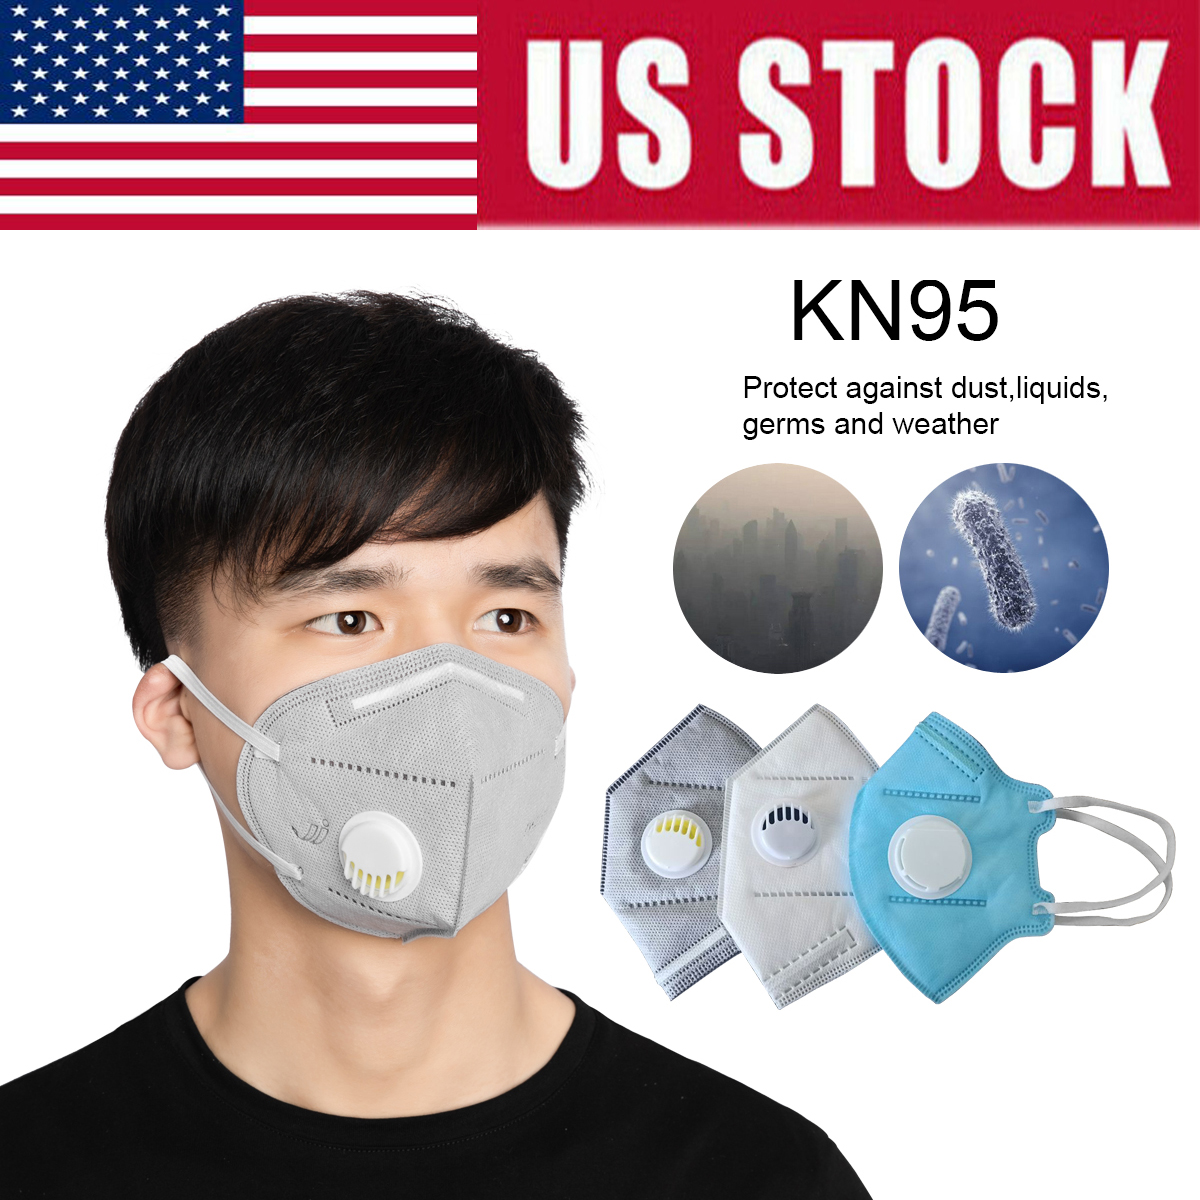 10pcs Mask KN95 PM2.5 Anti Flu Formaldehyde Bacteria Face Mask Dust-proof Mouth Masks Stock US/CN